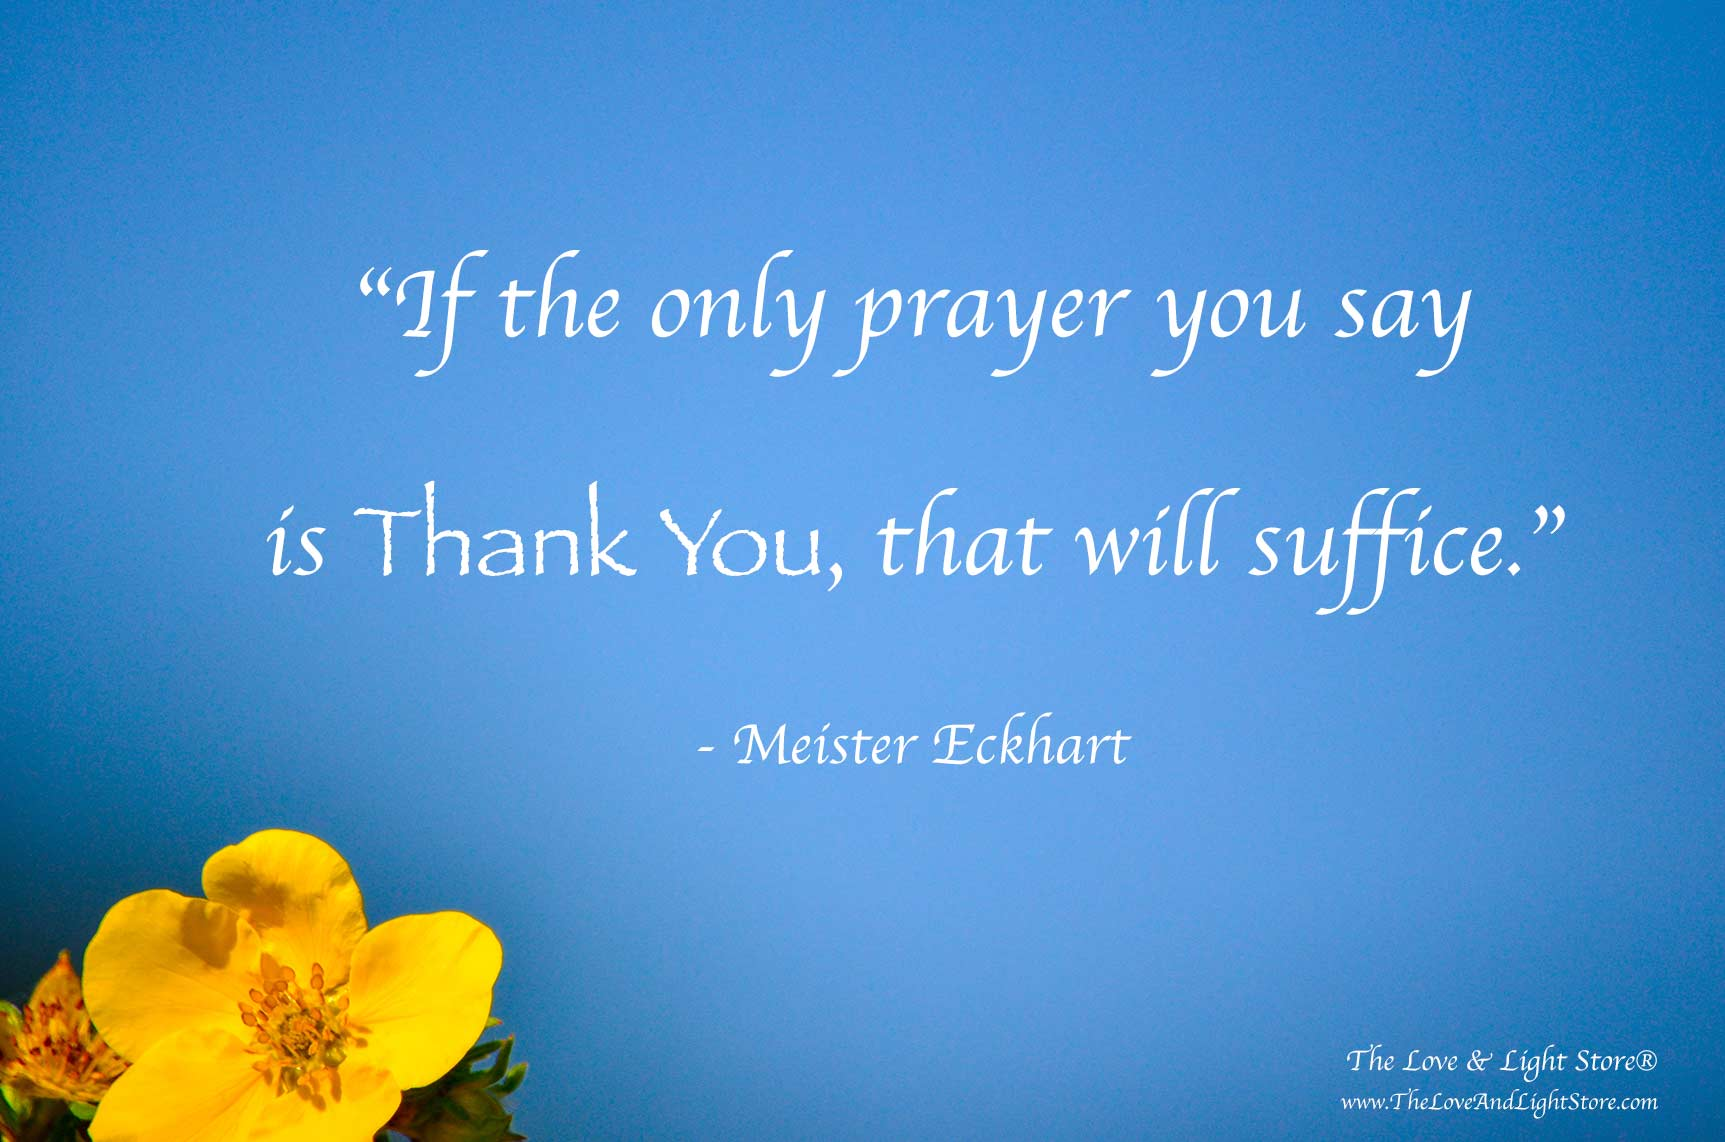 If the only prayer you say is thank you, that will suffice